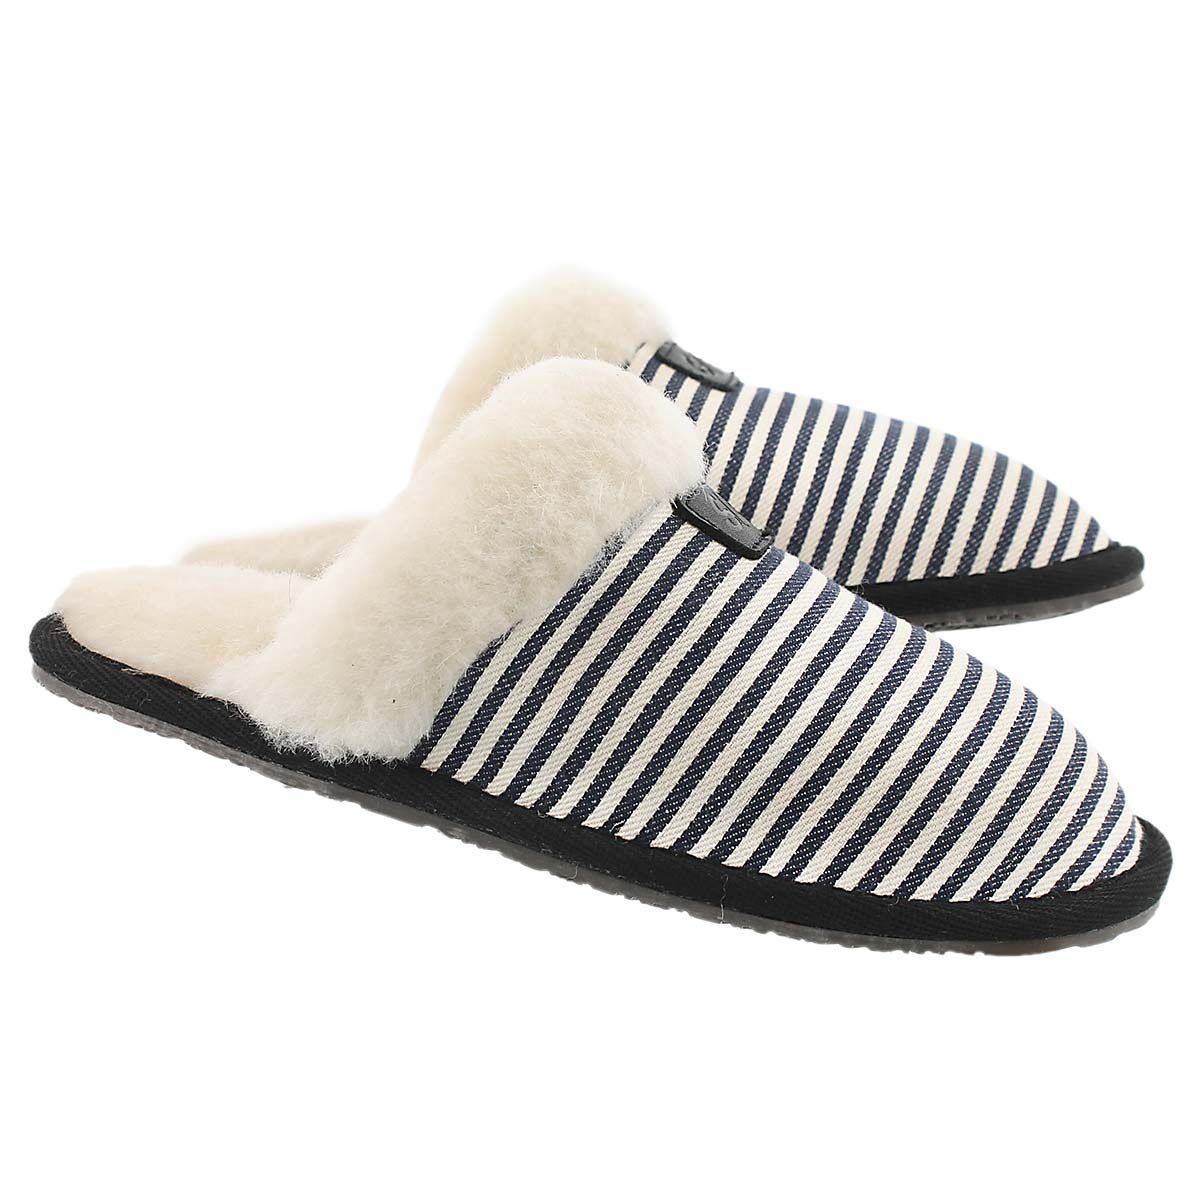 Lds Stacey navy stripe mem. foam slipper